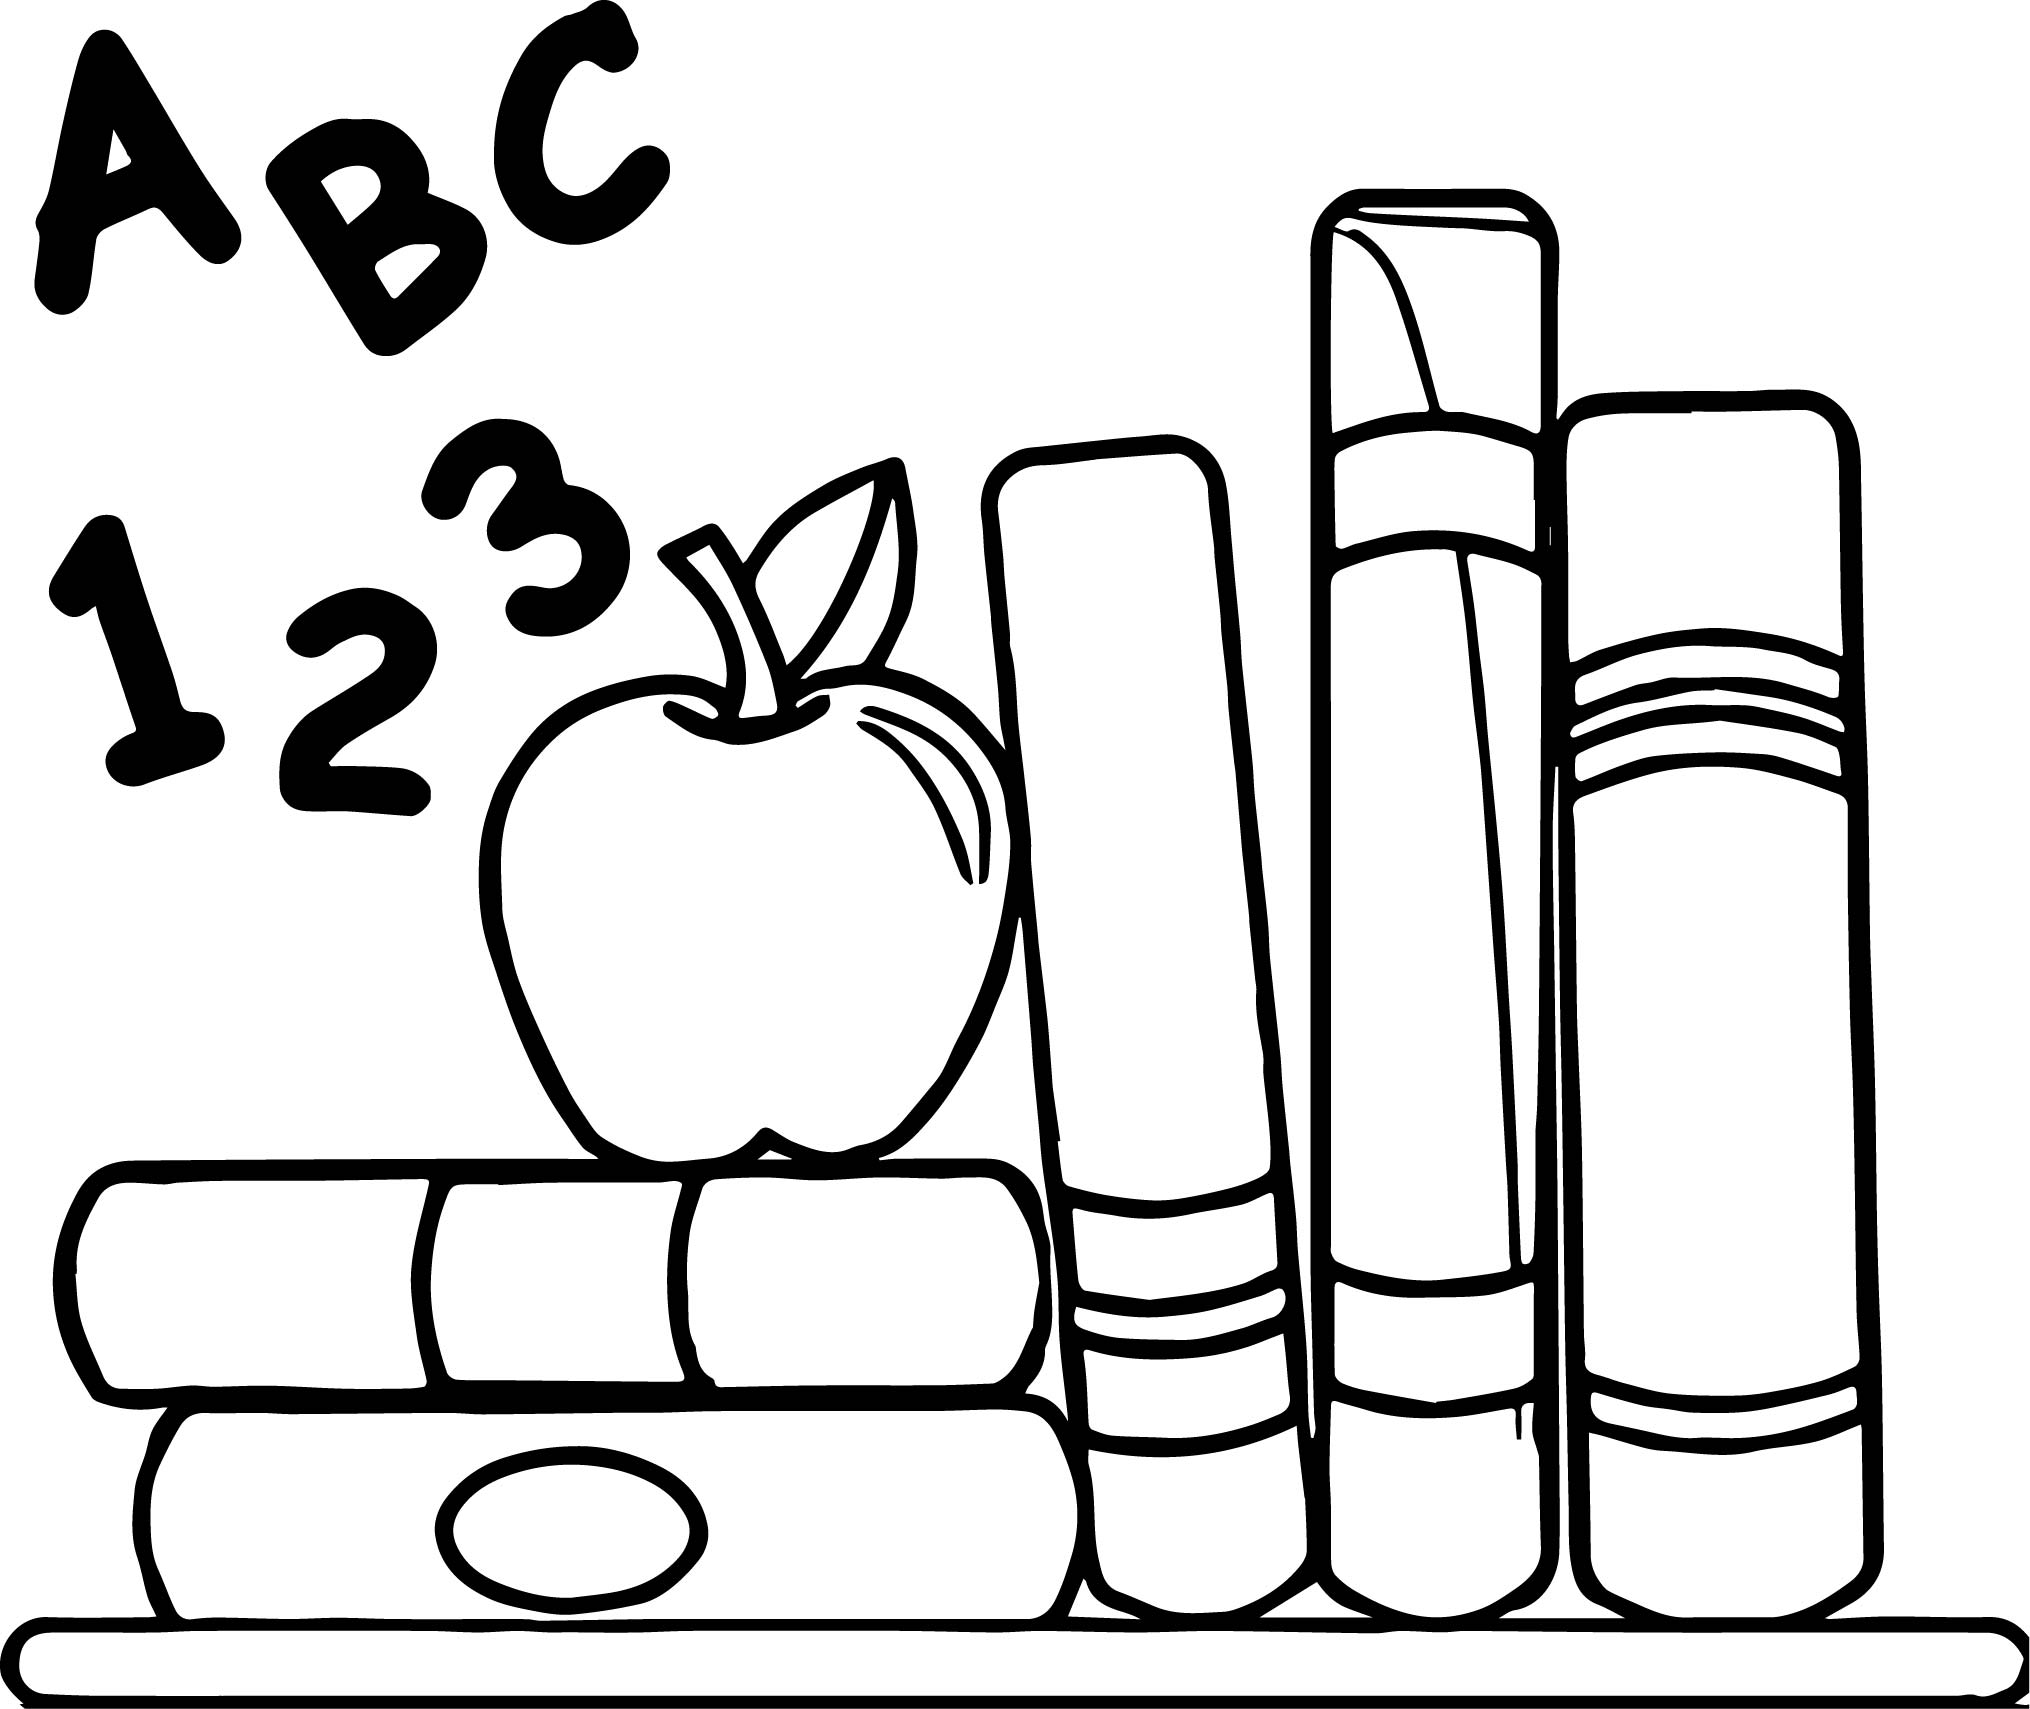 Art education teacher apple coloring page for Coloring pages of teachers